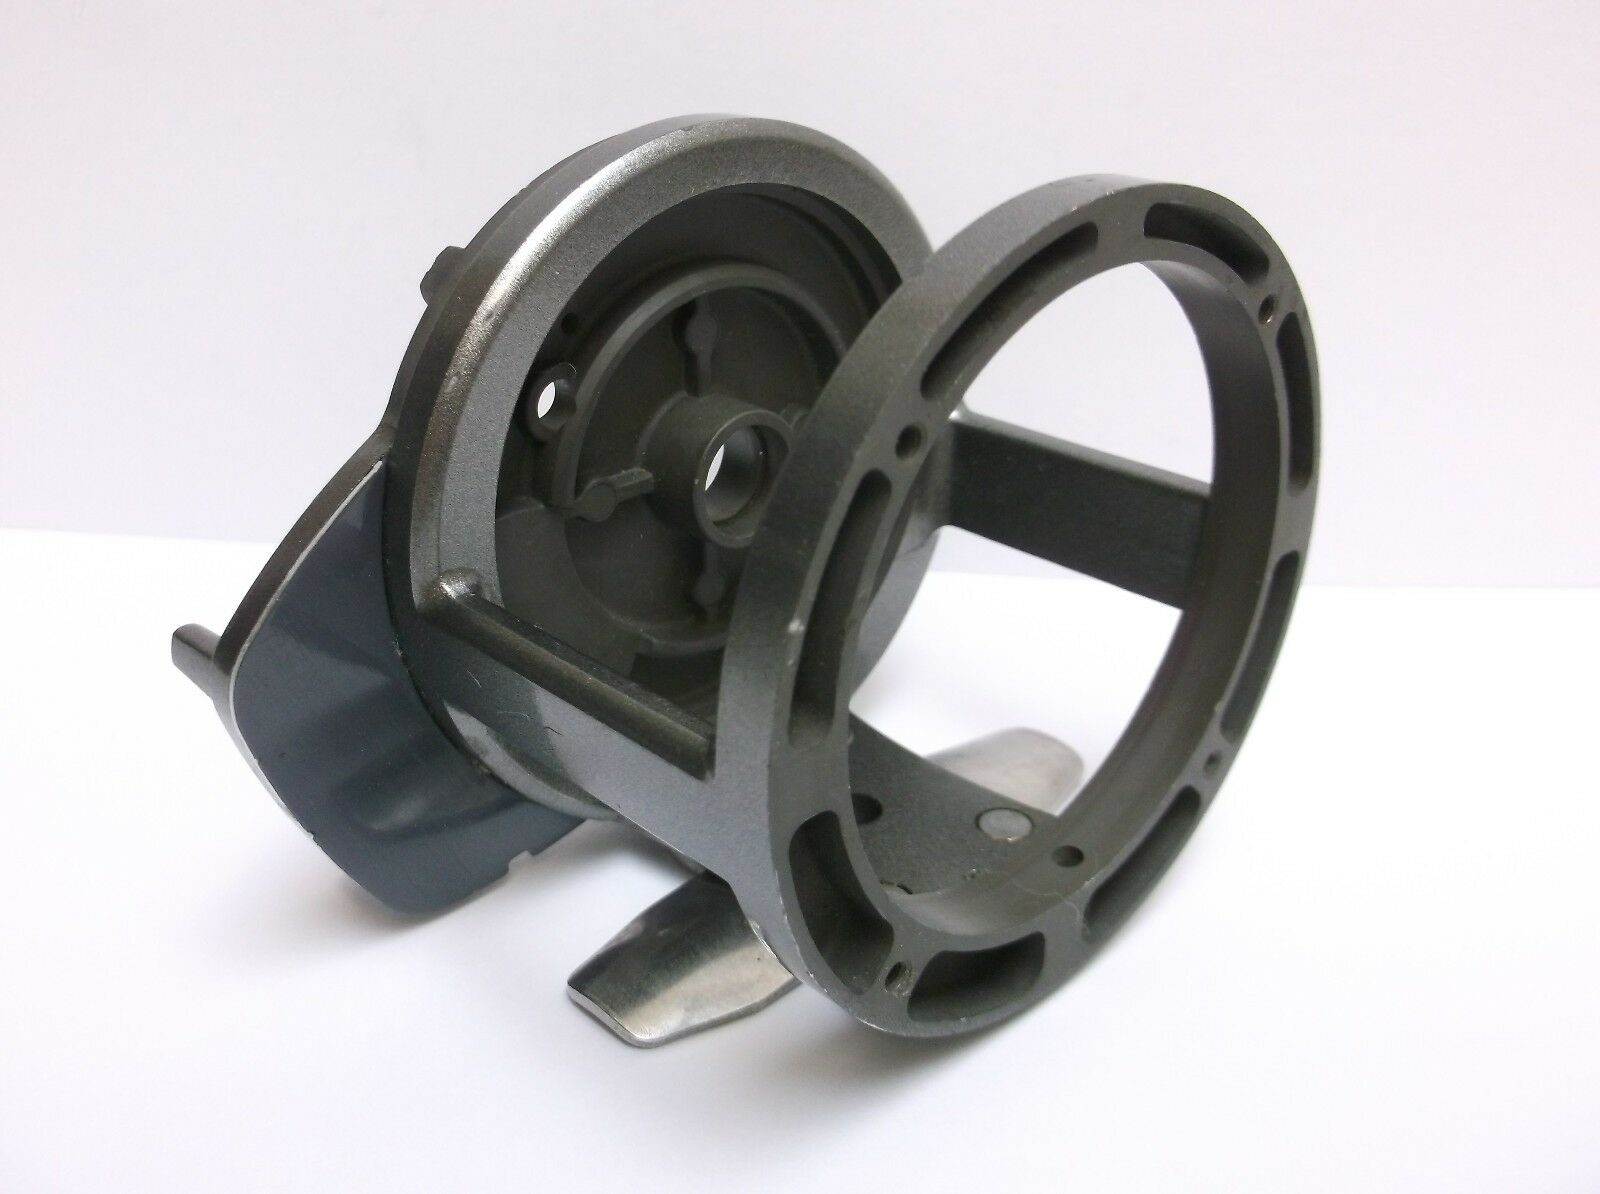 SHIMANO CONVENTIONAL REEL PART - TGT0620 Torium 20 - One Piece Frame  A